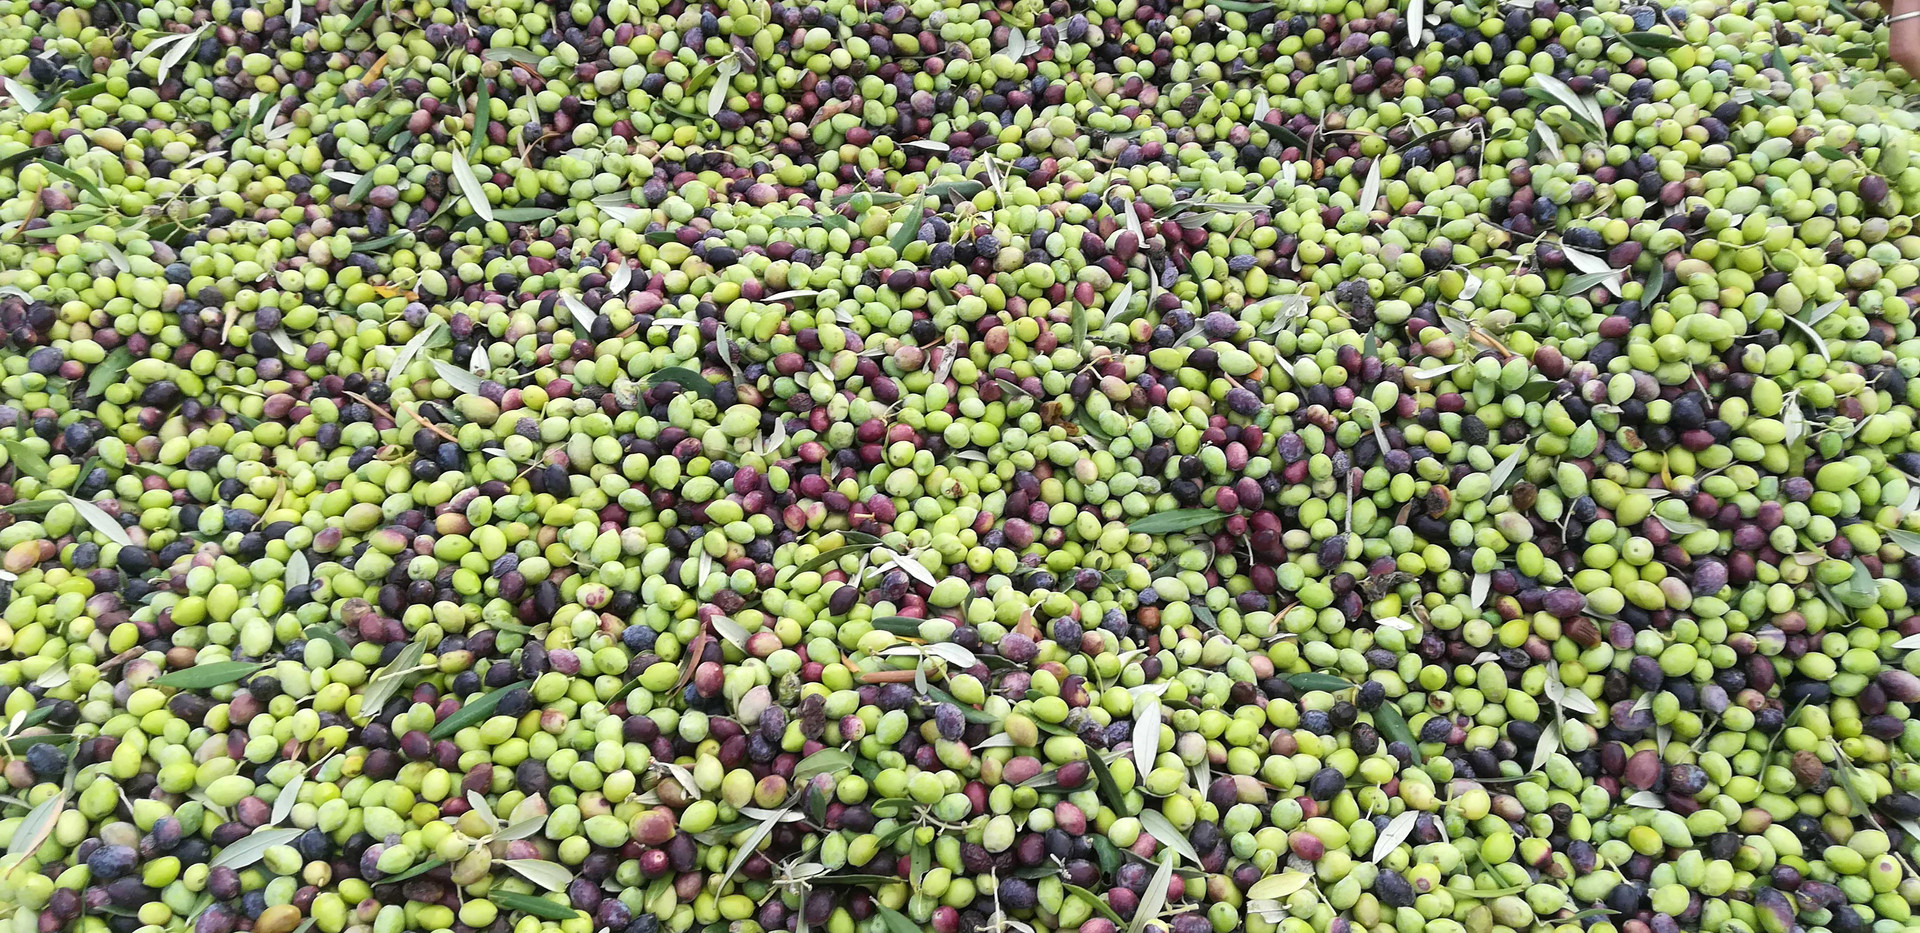 colourful-olives1.jpg